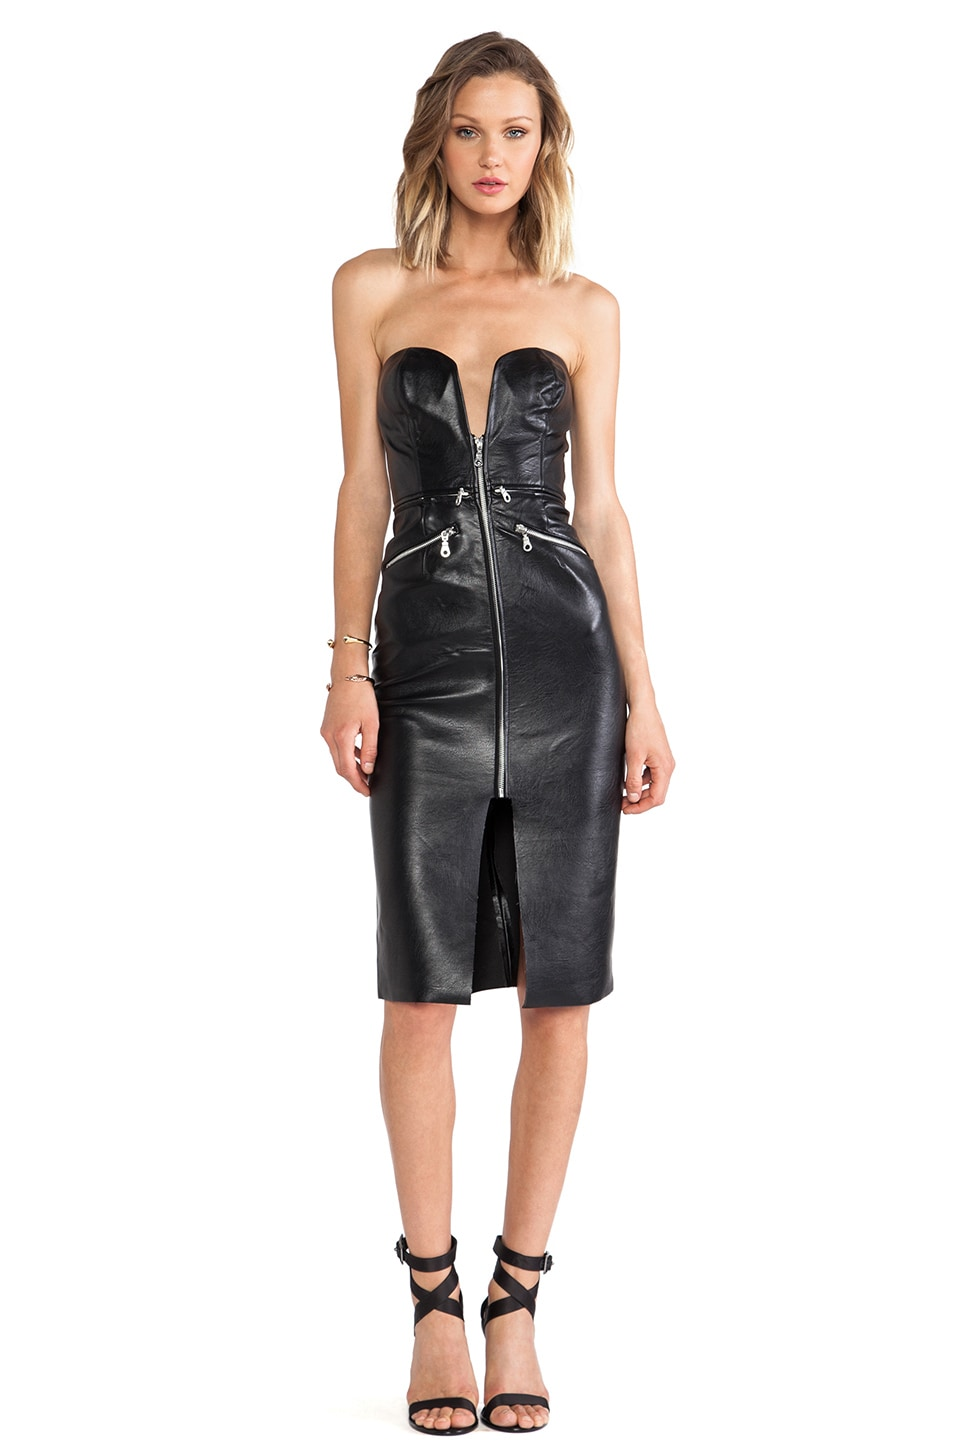 Shakuhachi Leather Zip Me Up Dress in Black